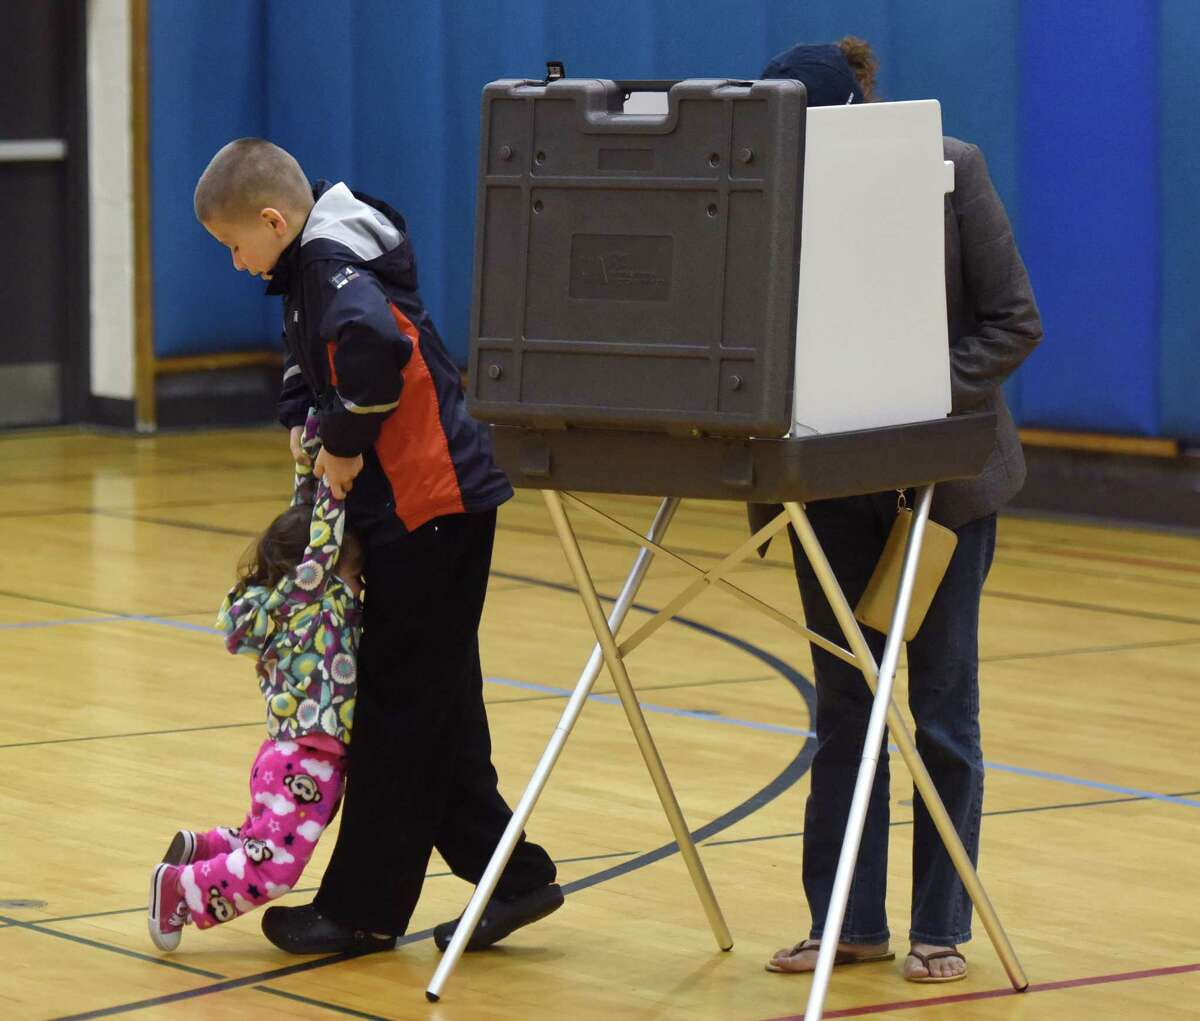 Greenwich resident Ludy Nino votes as Tristan, 11, and Connie, 1, play beside her at the 2016 presidential primary election for Greenwich's District 3 at Western Middle School in Greenwich, Conn. Tuesday, April 26, 2016.